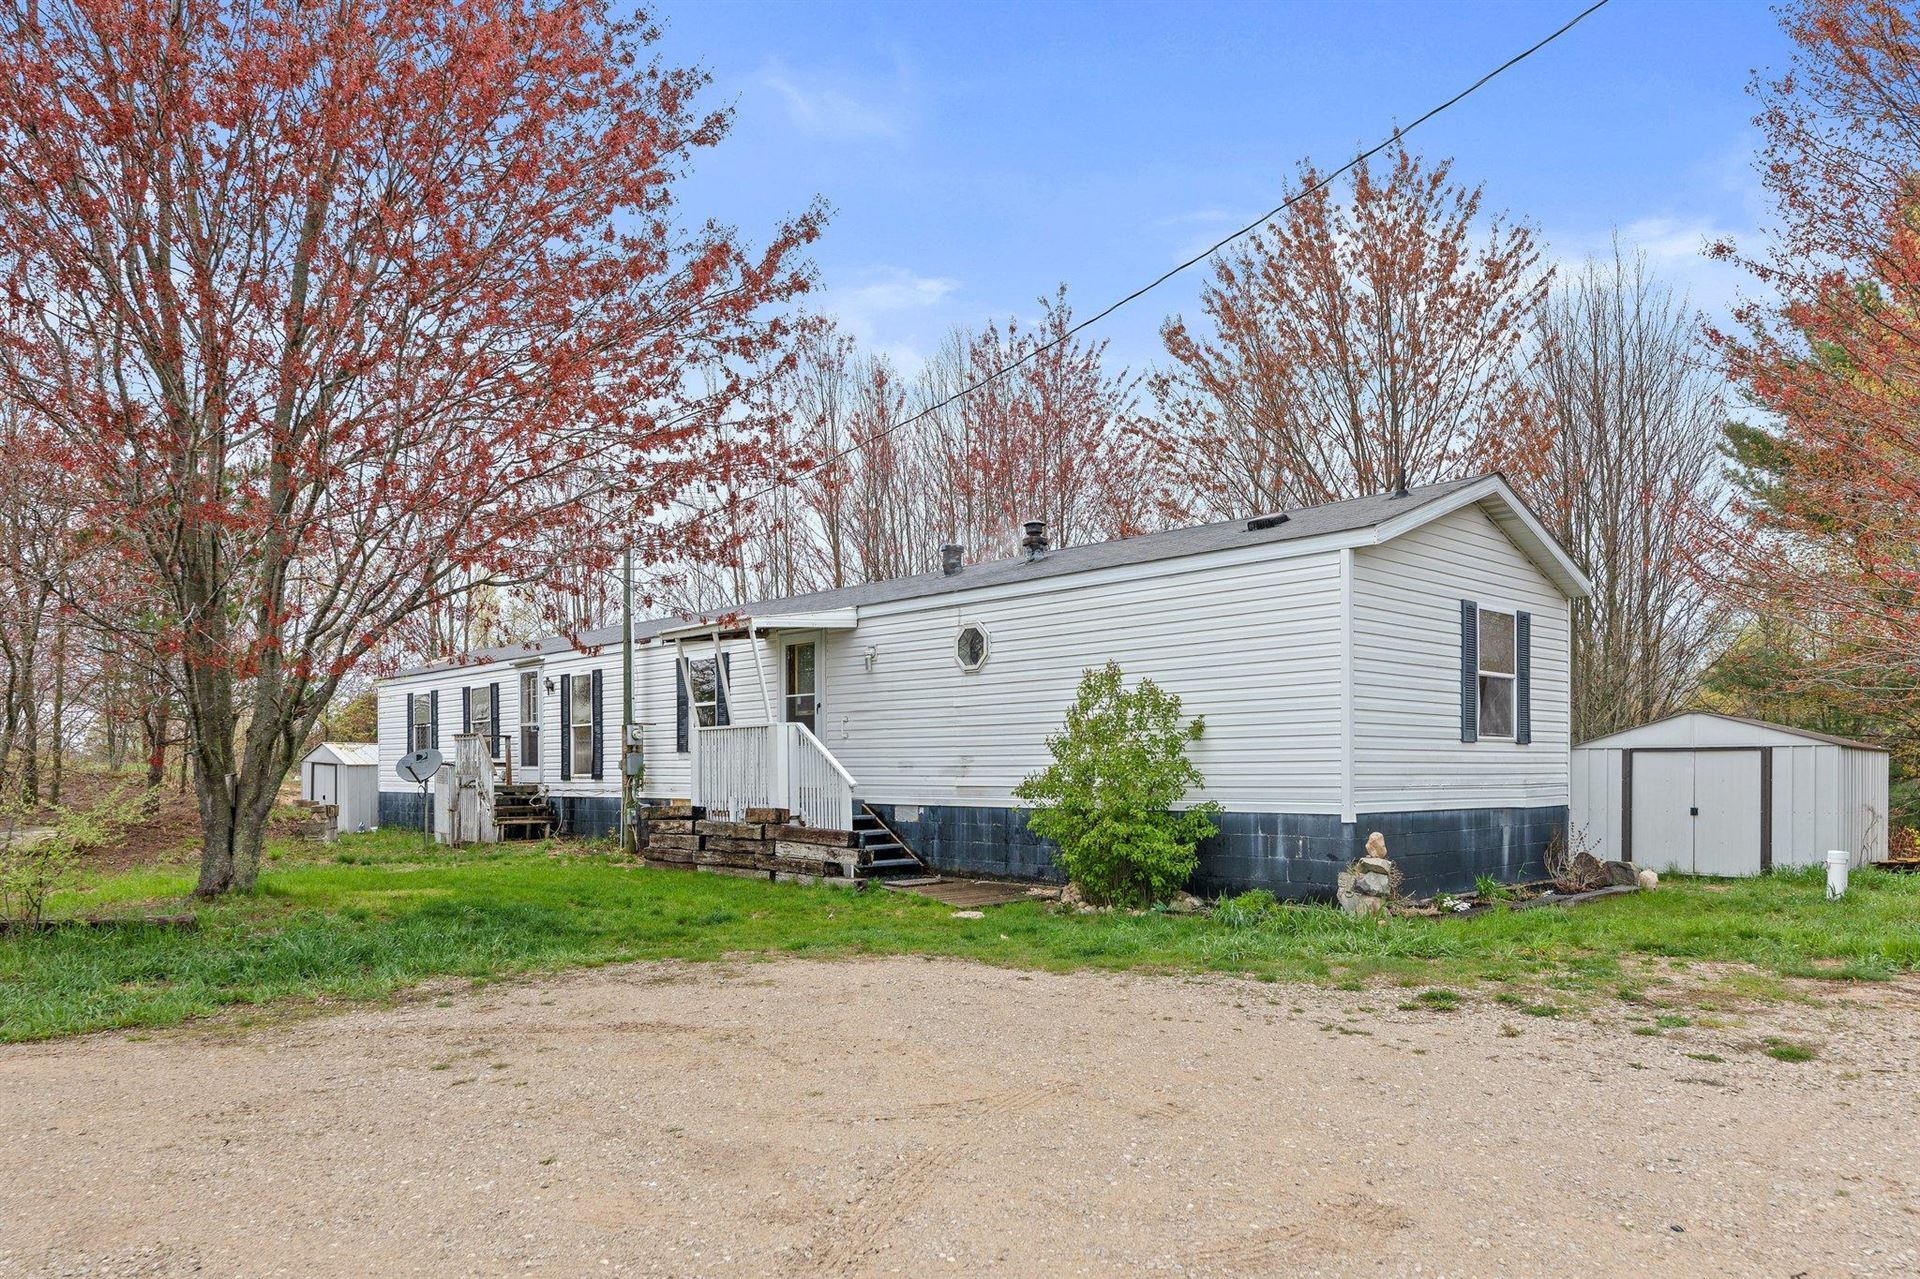 8188 E 3 Mile Rd Road, Luther, MI 49656 - MLS#: 21016205